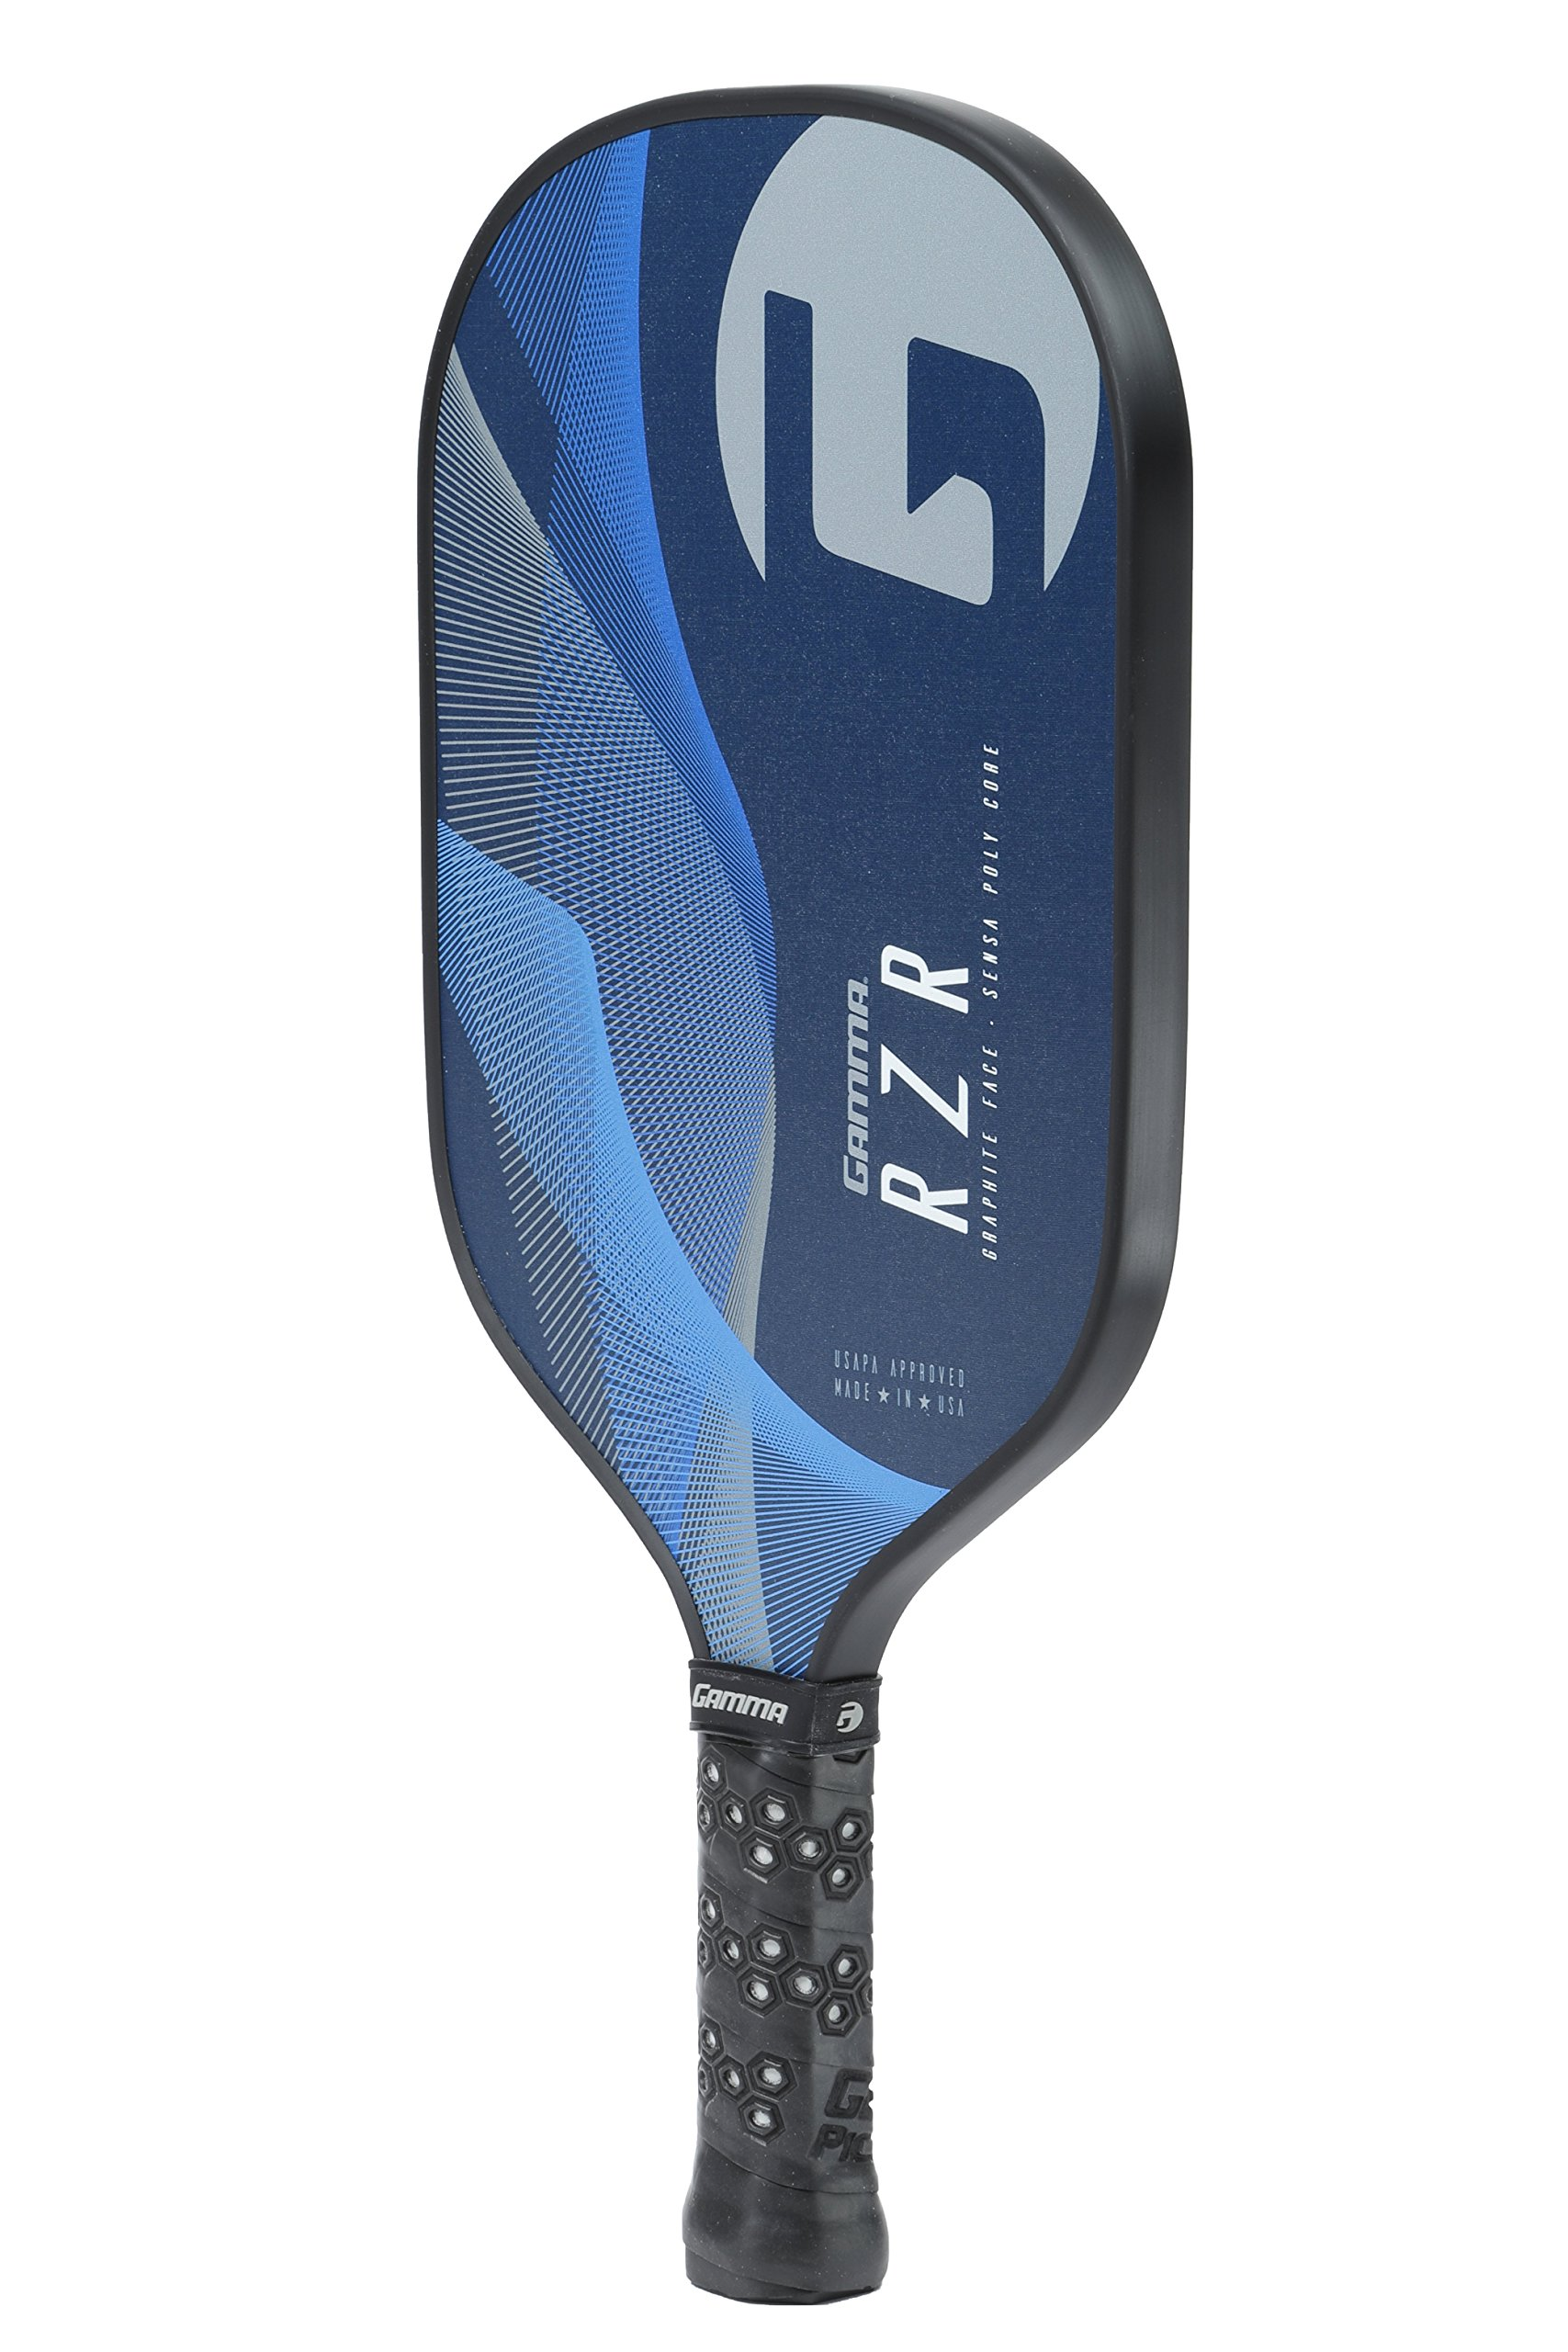 Gamma RZR Composite Pickleball Paddle: Pickle Ball Paddles for Indoor & Outdoor Play - USAPA Approved Racquet for Adults & Kids - Blue/Grey by Gamma (Image #4)